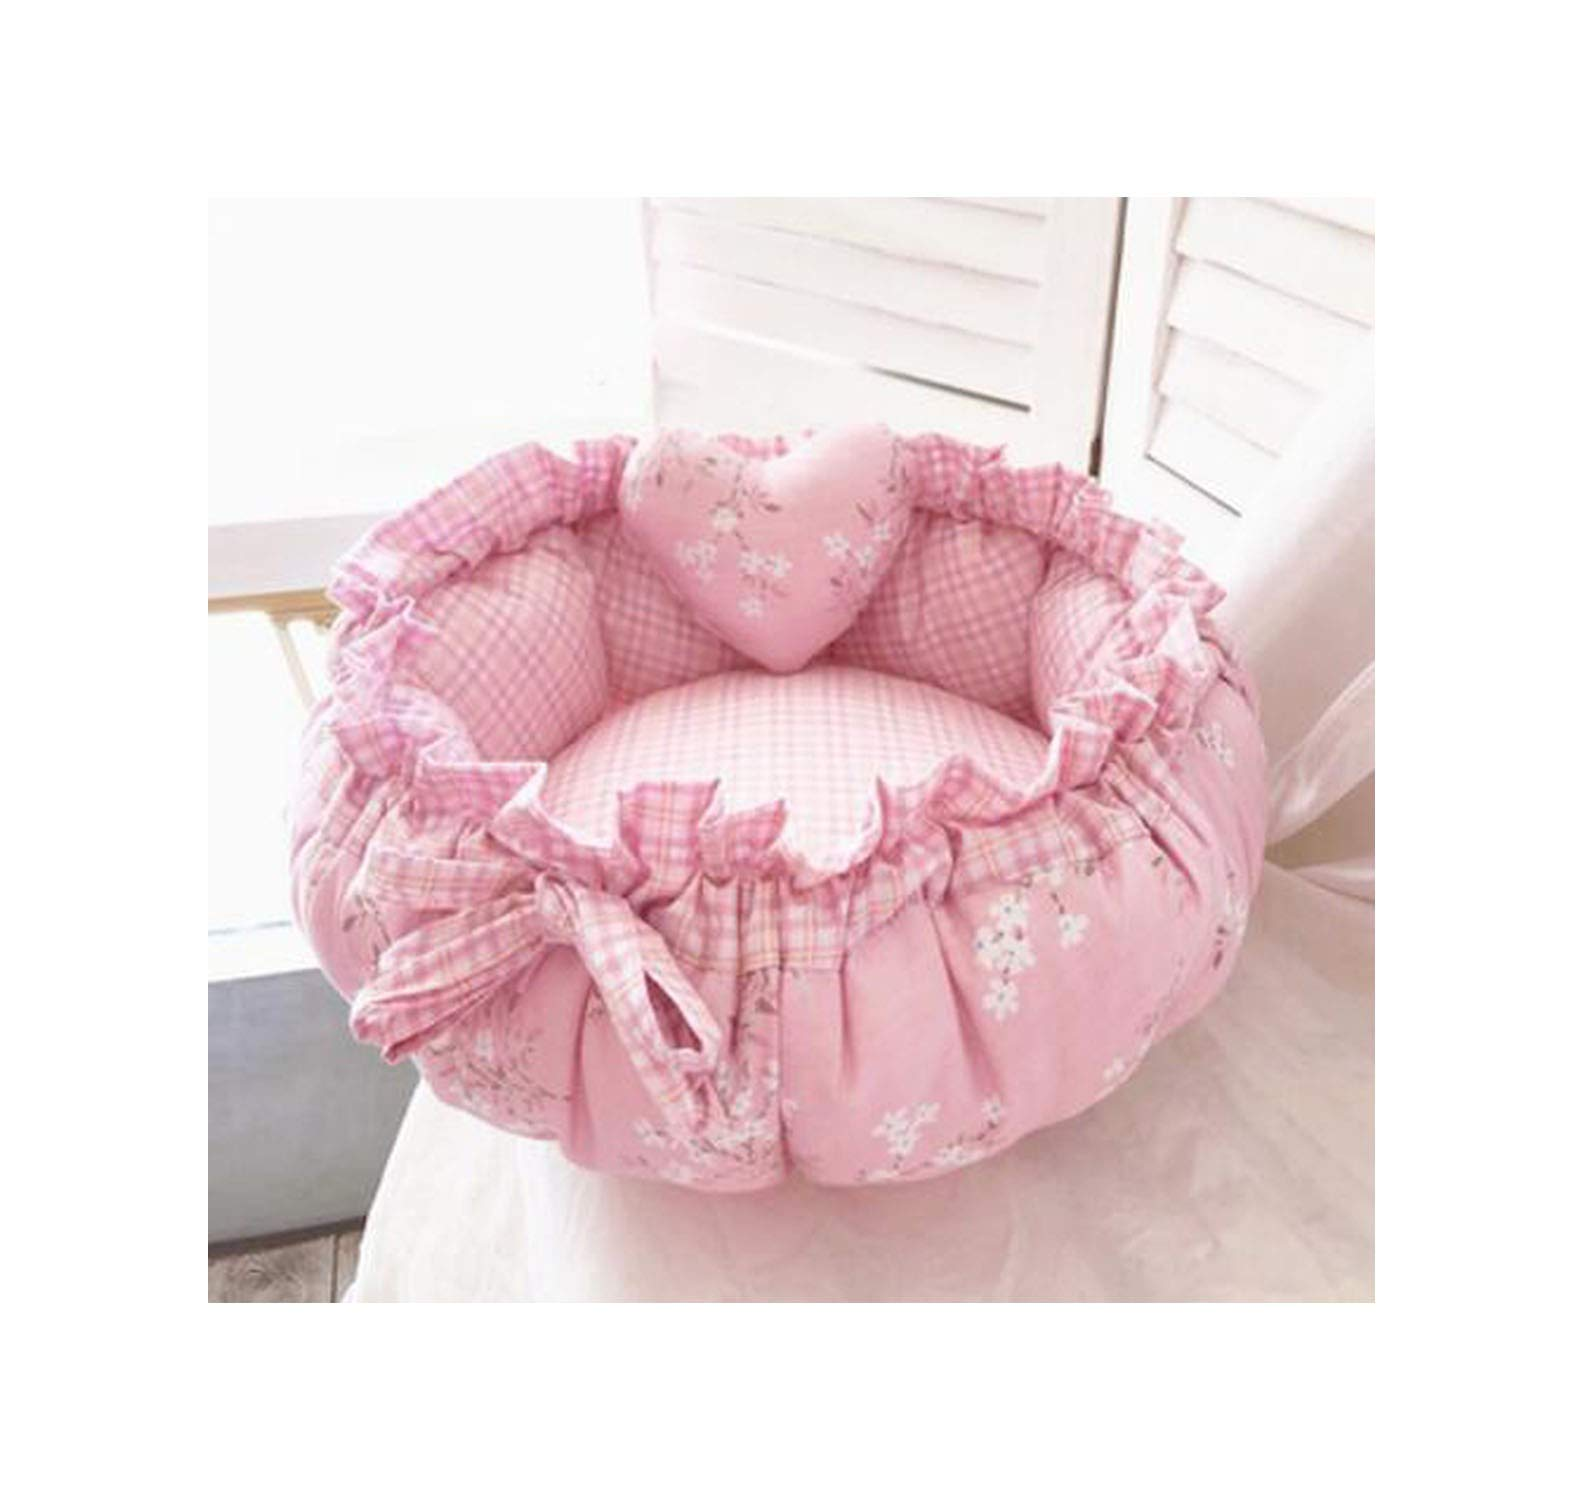 Princess Style Sweety Pet Dog Bed Cat Bed House Cushion Kennel Pens Sofa with Pillow Warm Sleeping Bag 1Pc,3,L 60Cm by PANSHANYAO-Pet beds